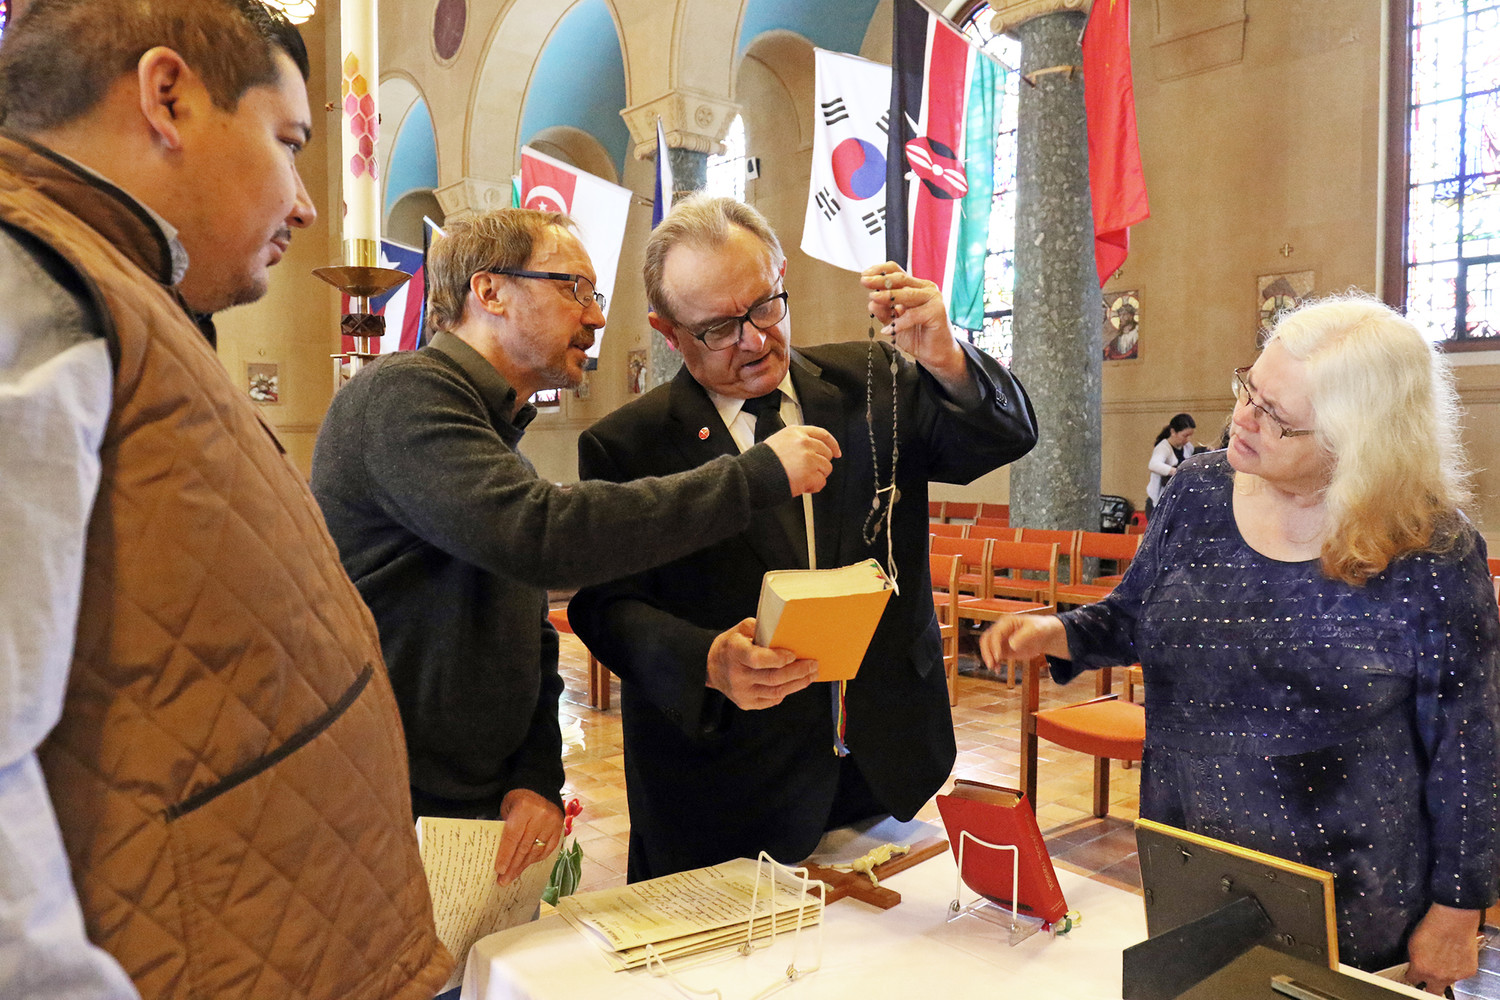 Jose Velazquez, left, Greg Darr, Brother John Blazo, M.M., and Lori Alpert look at a display of historical items after attending the Mass. The liturgy marked the opening of a yearlong celebration by the Maryknoll Society of the centennial of its first mission sending.